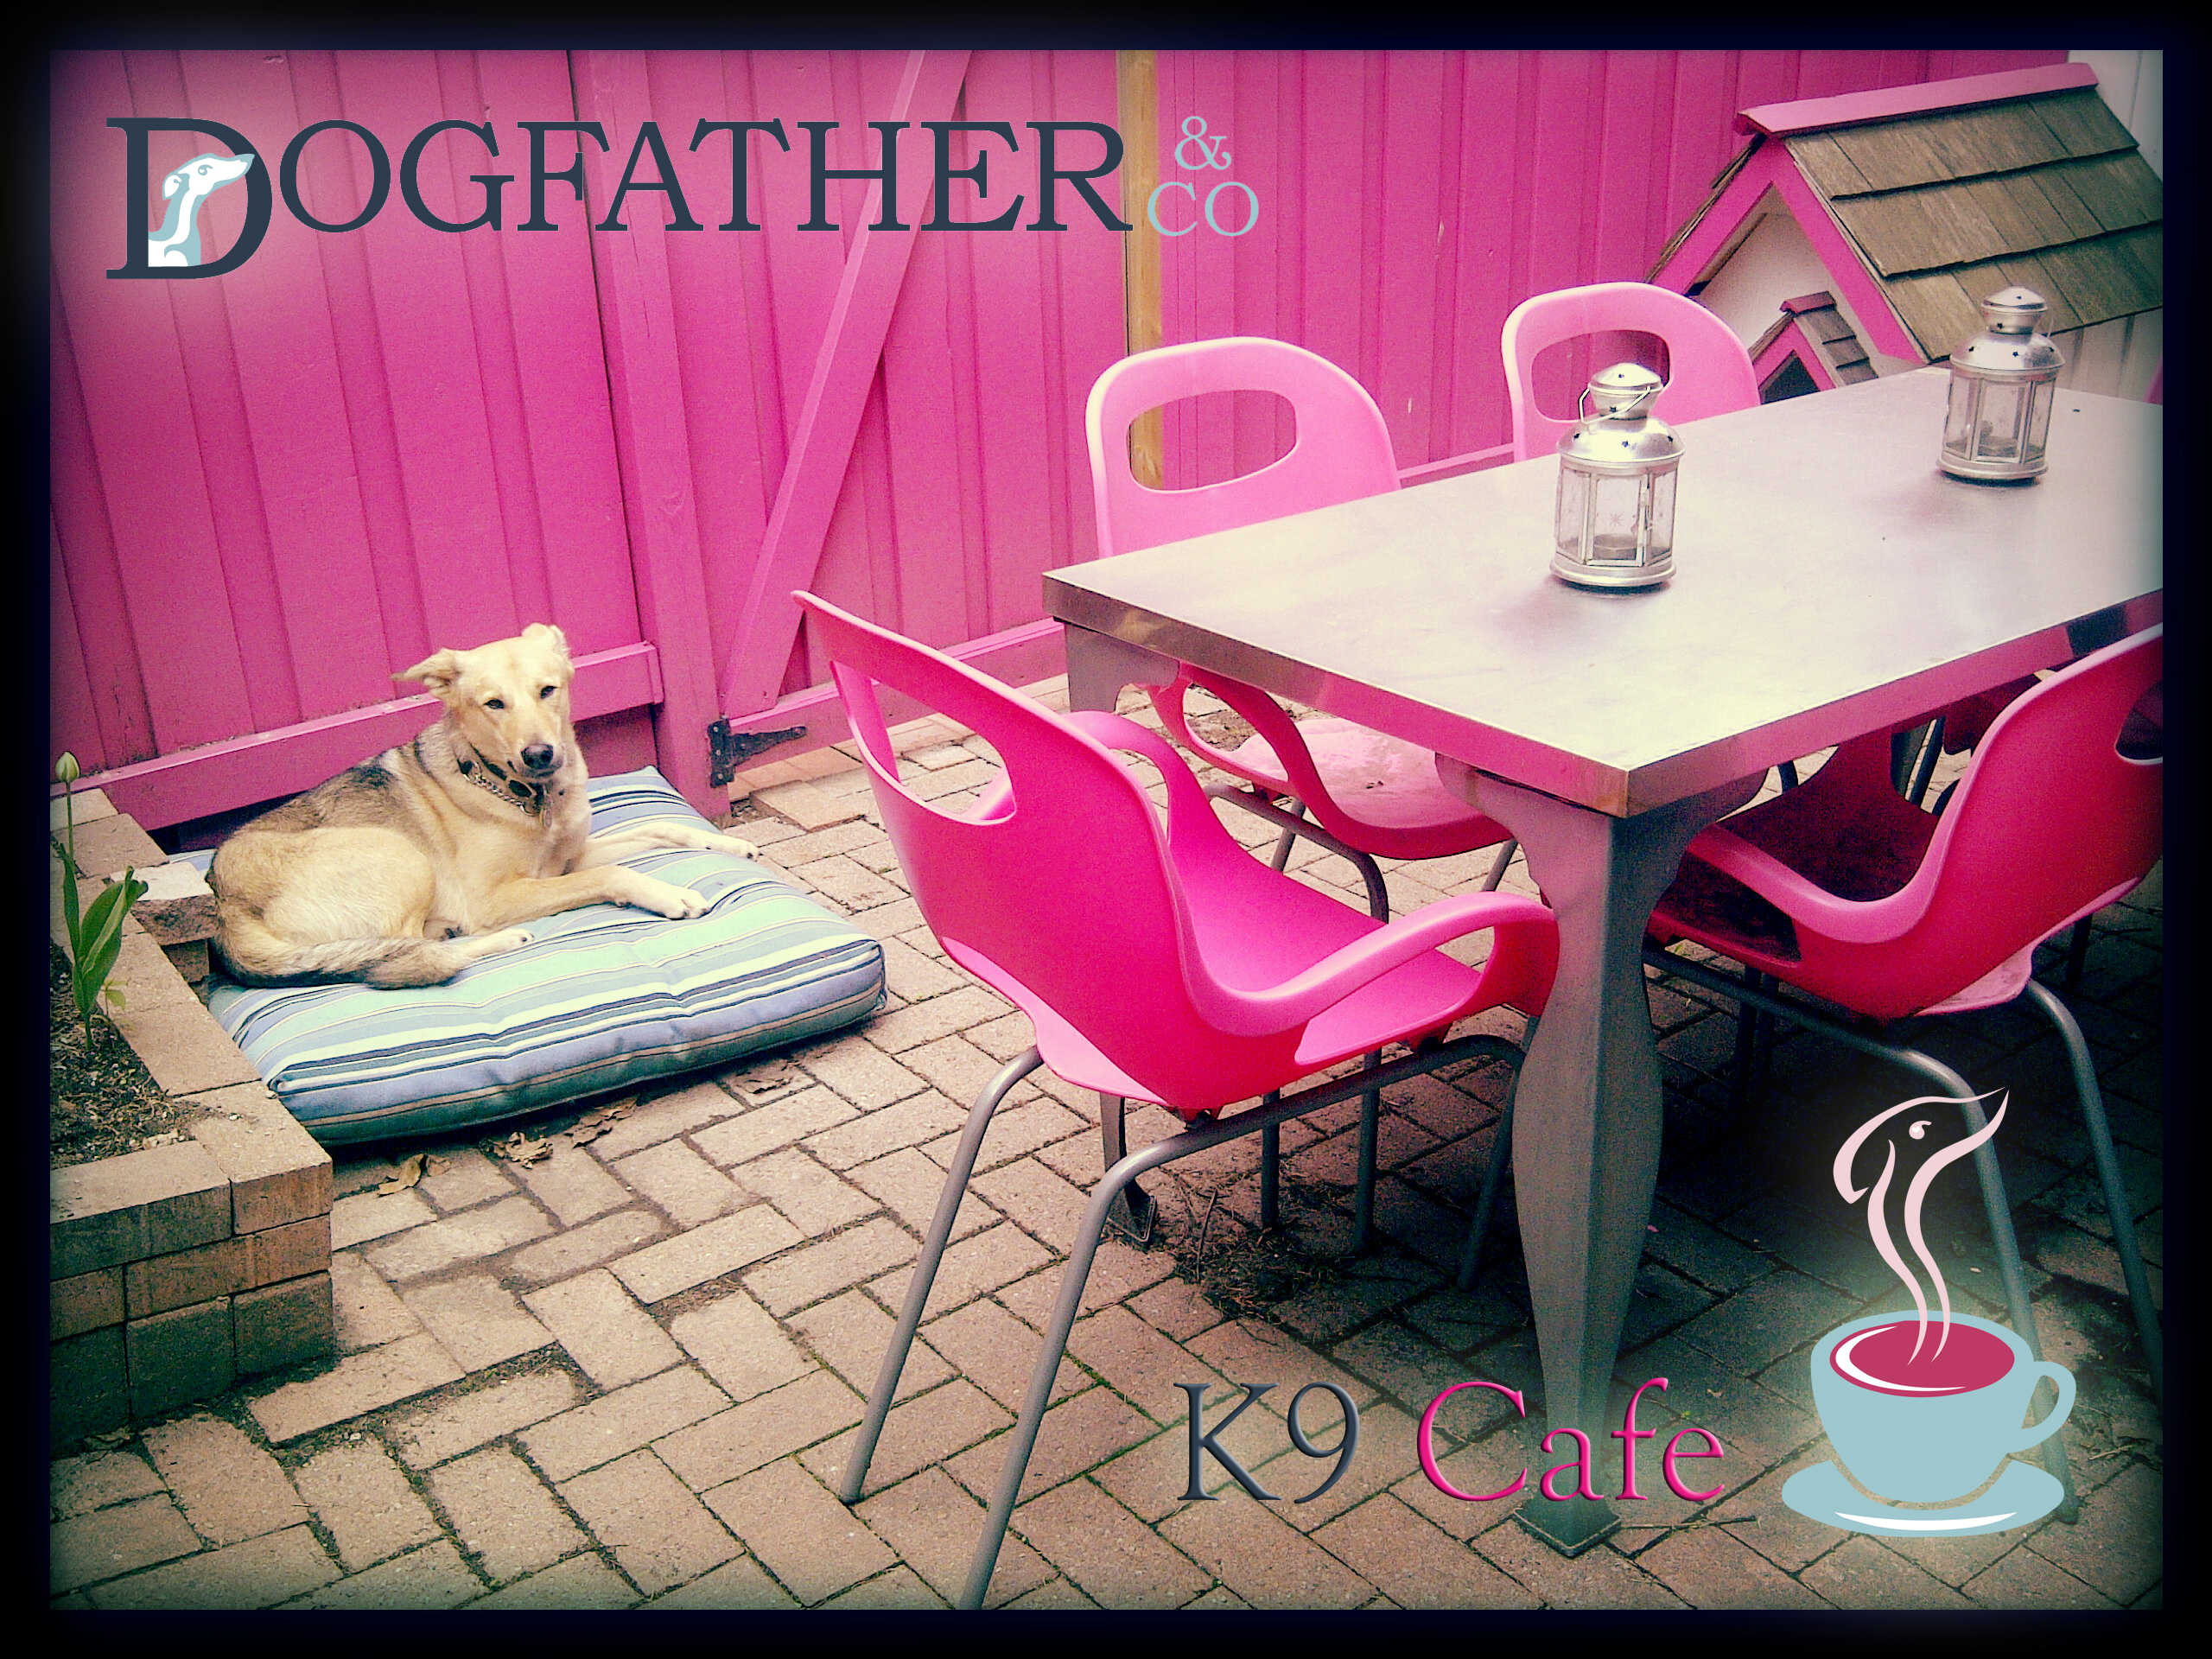 K9 Dog Caf 233 Dogfather And Co Canine Retail And Dog